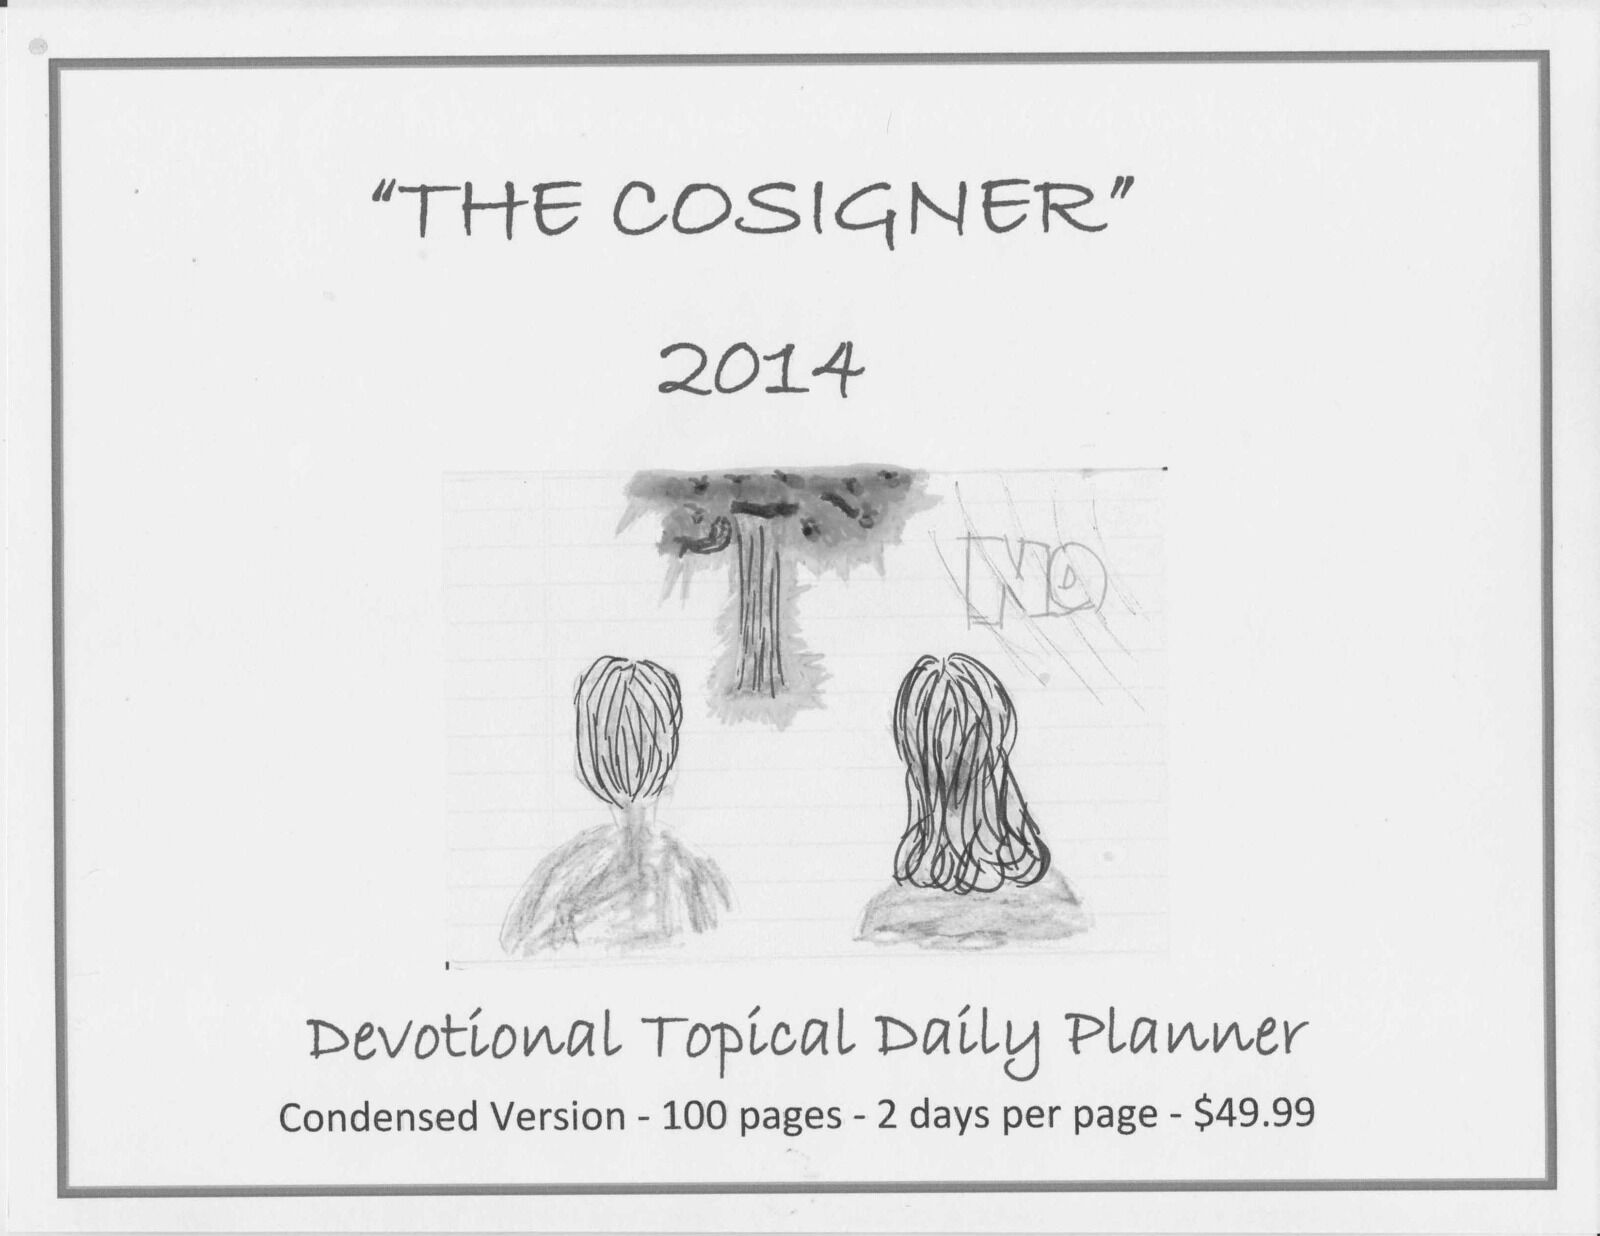 The Cosigner  A Devotional Topical Planner 2014 (condensed version)